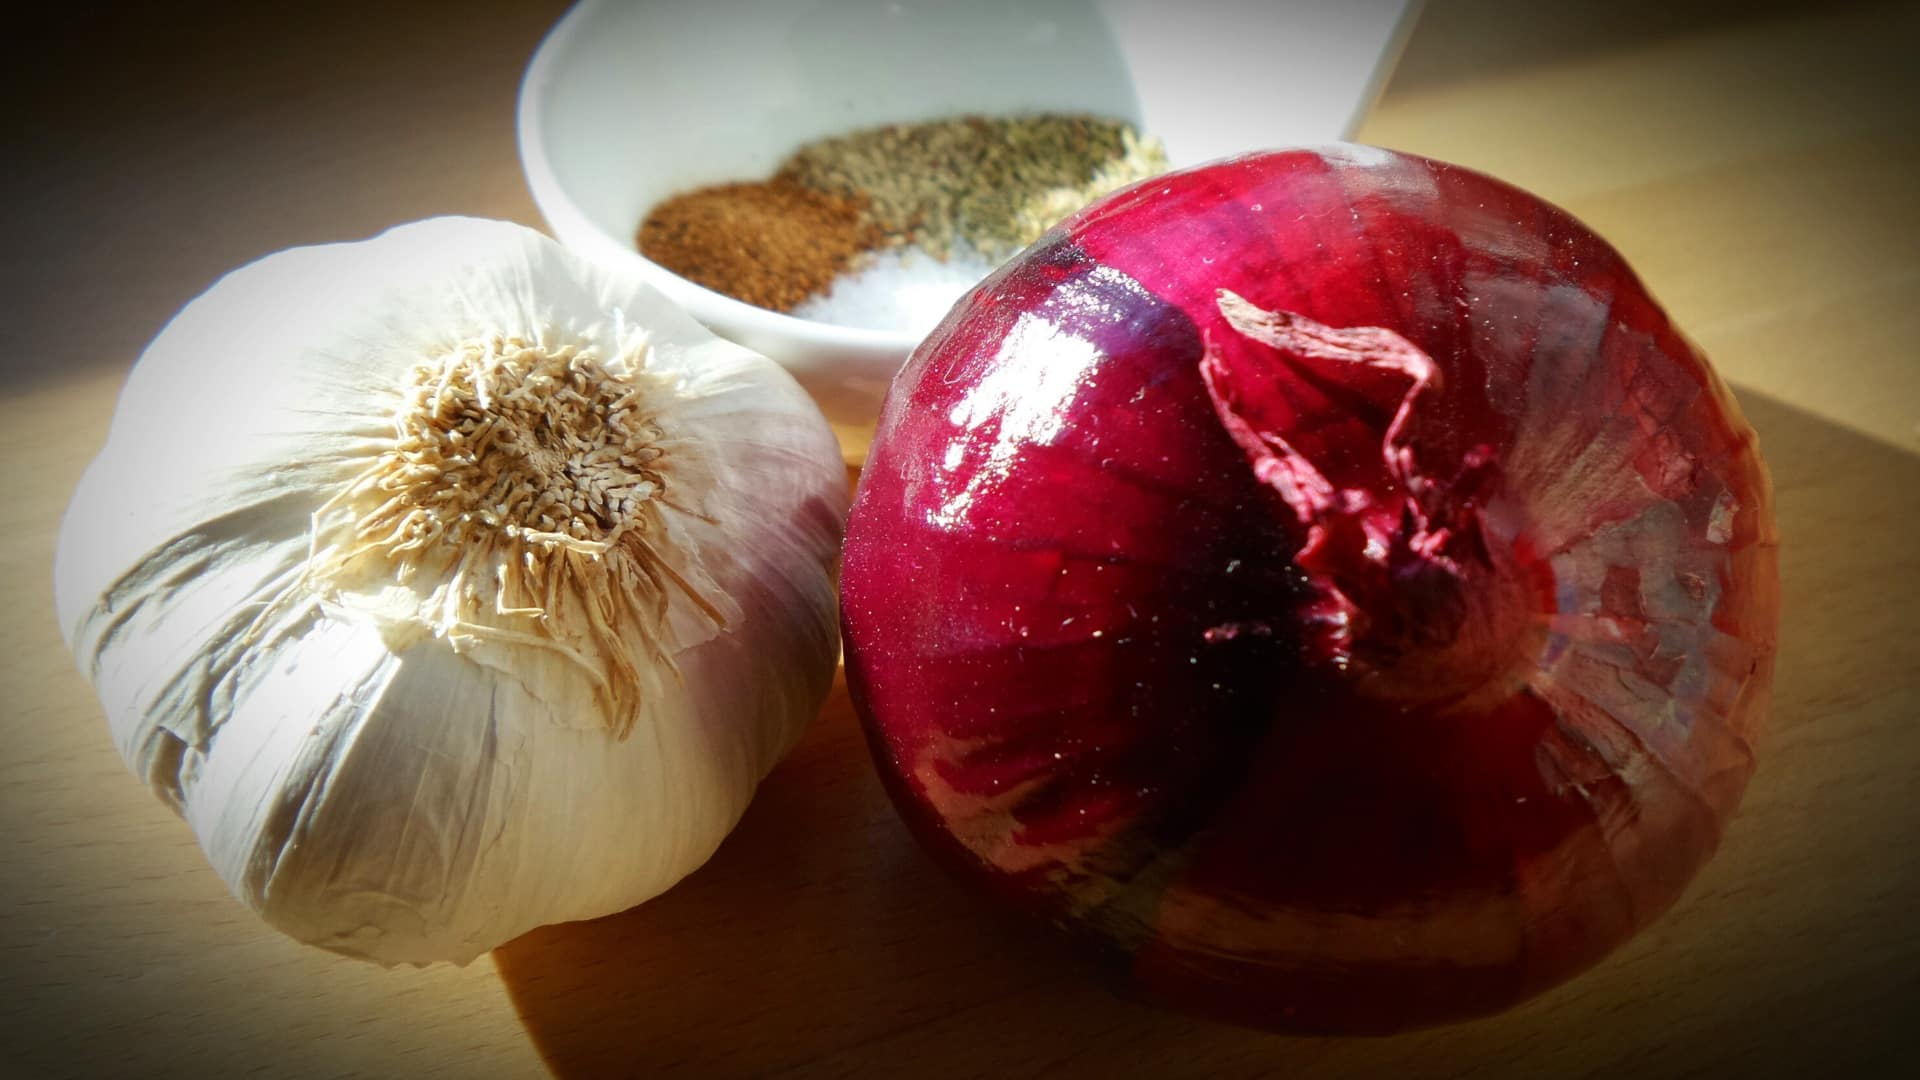 Inhibiting Platelet Activation with Garlic and Onions